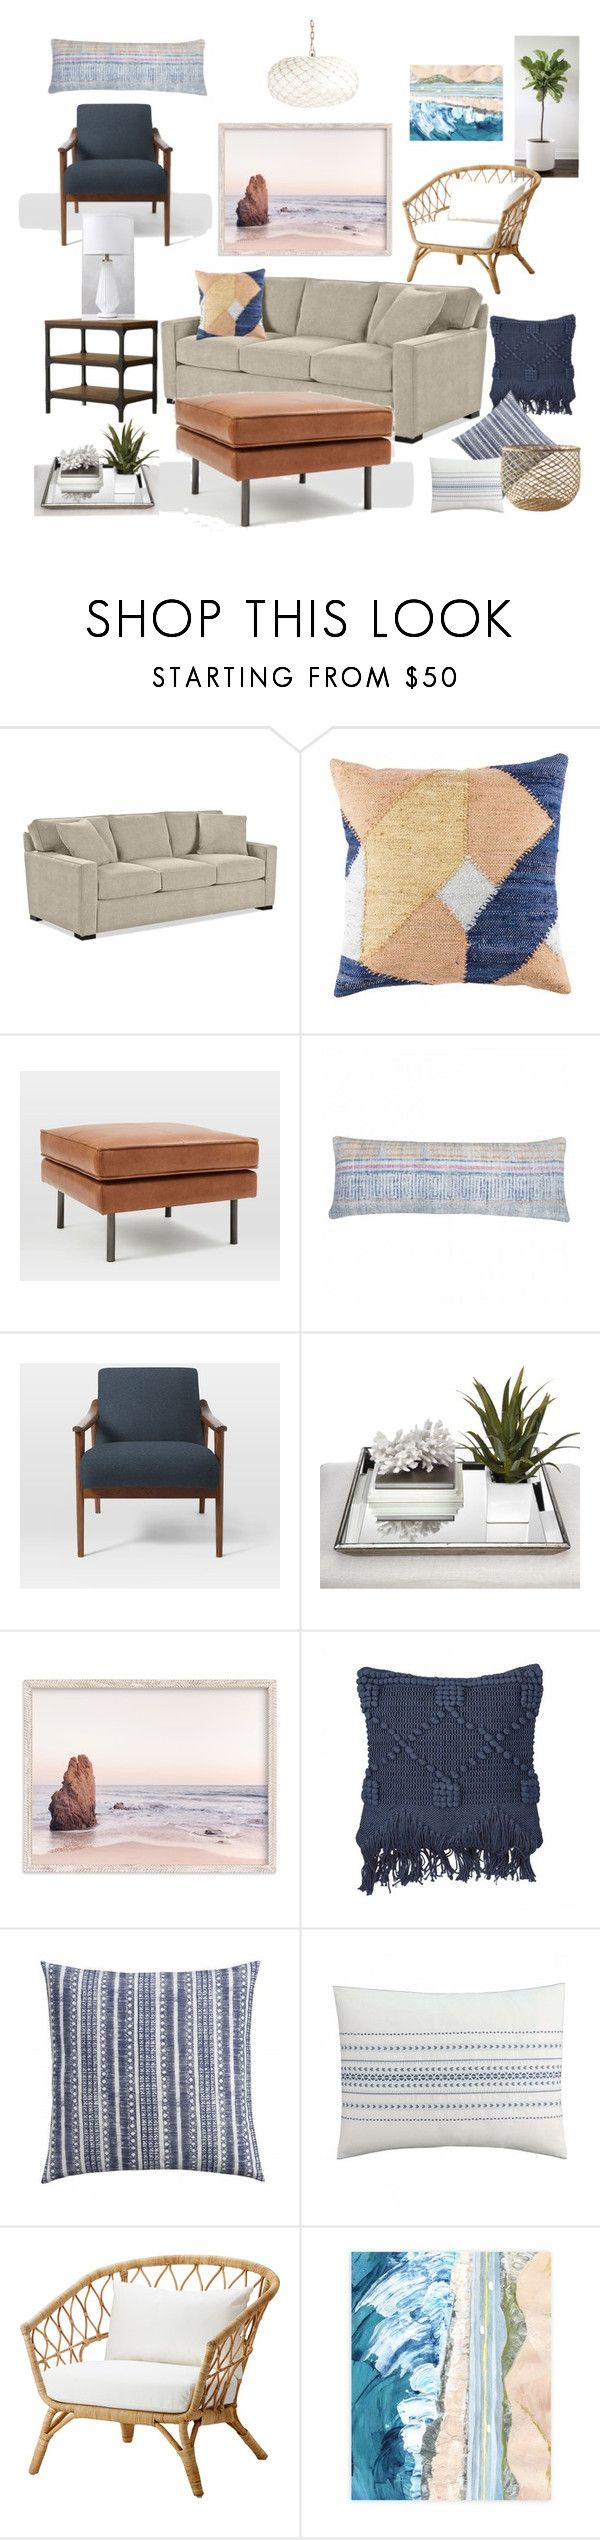 Corte Madera Living Room Refresh by noelkvis on Polyvore featuring interior, interiors, interior design, home, home decor, interior decorating, West Elm, Serena & Lily, Millà and cupcakes and cashmere